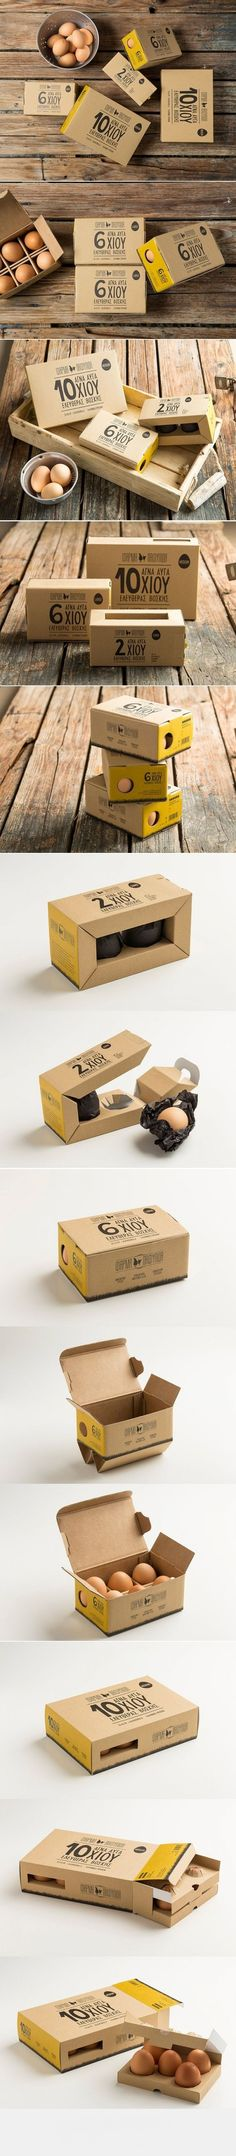 The material used is kraft cardboard 400gr and the packaging was designed so that the product is exposed in order for the consumer to have visual contact with it, stressing the larger size of the eggs. Each egg is wrapped in black thin paper for protection and differentiation from the competition.